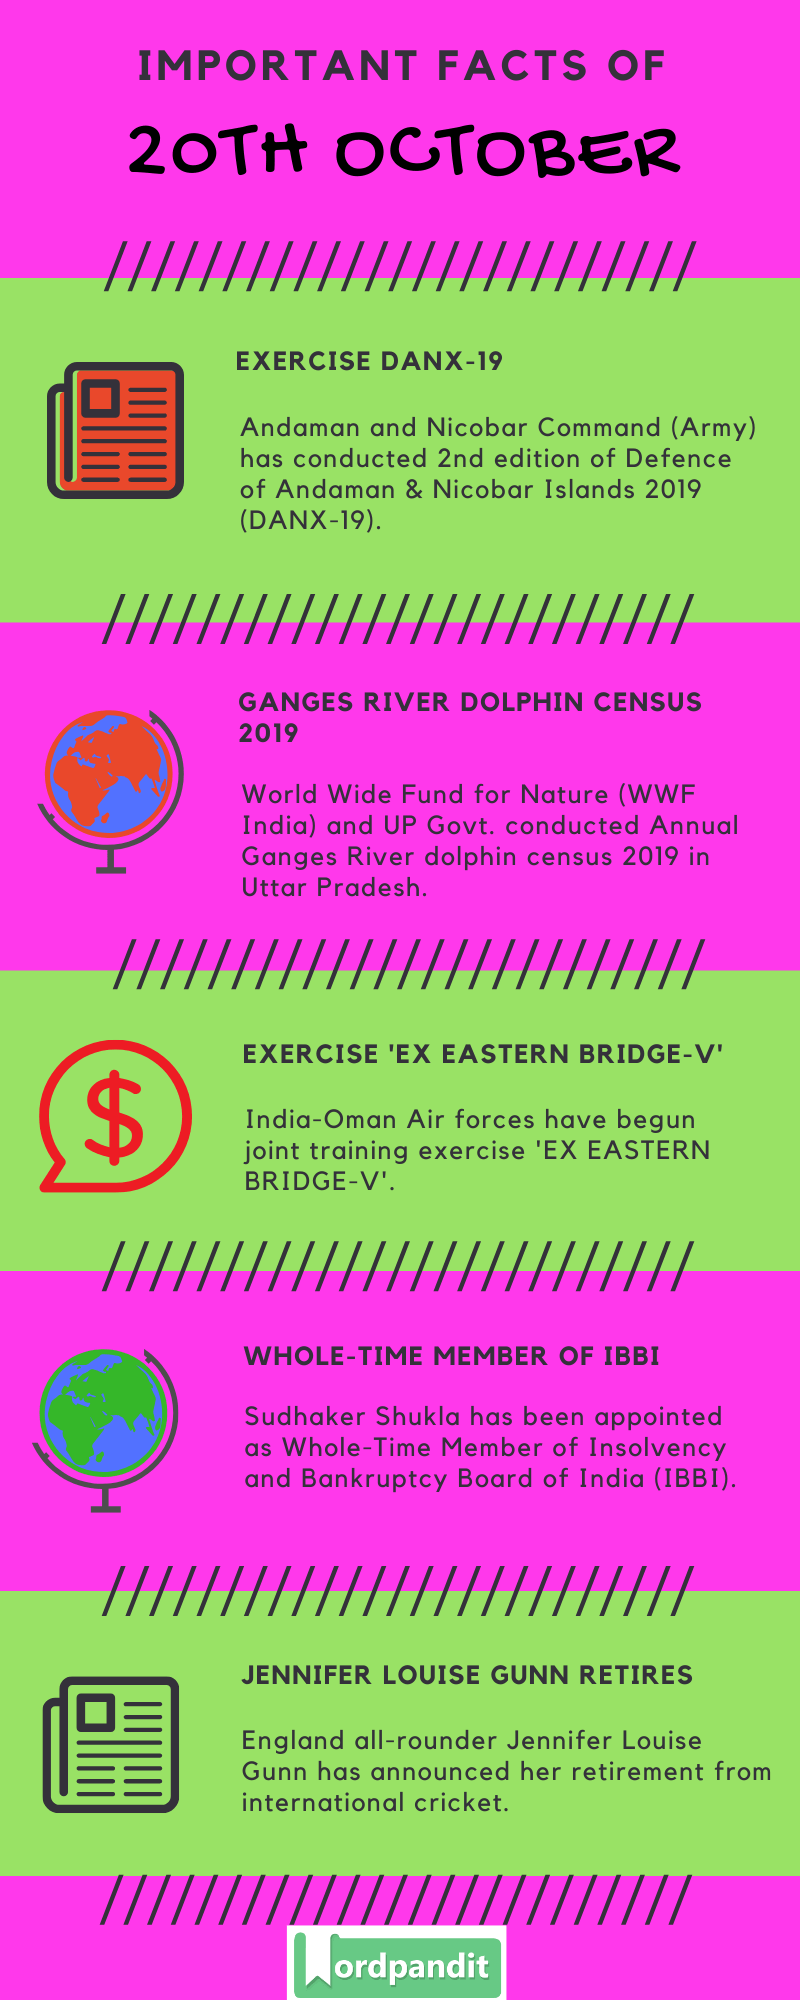 Daily Current Affairs 20 October 2019 Current Affairs Quiz 20 October 2019 Current Affairs Infographic